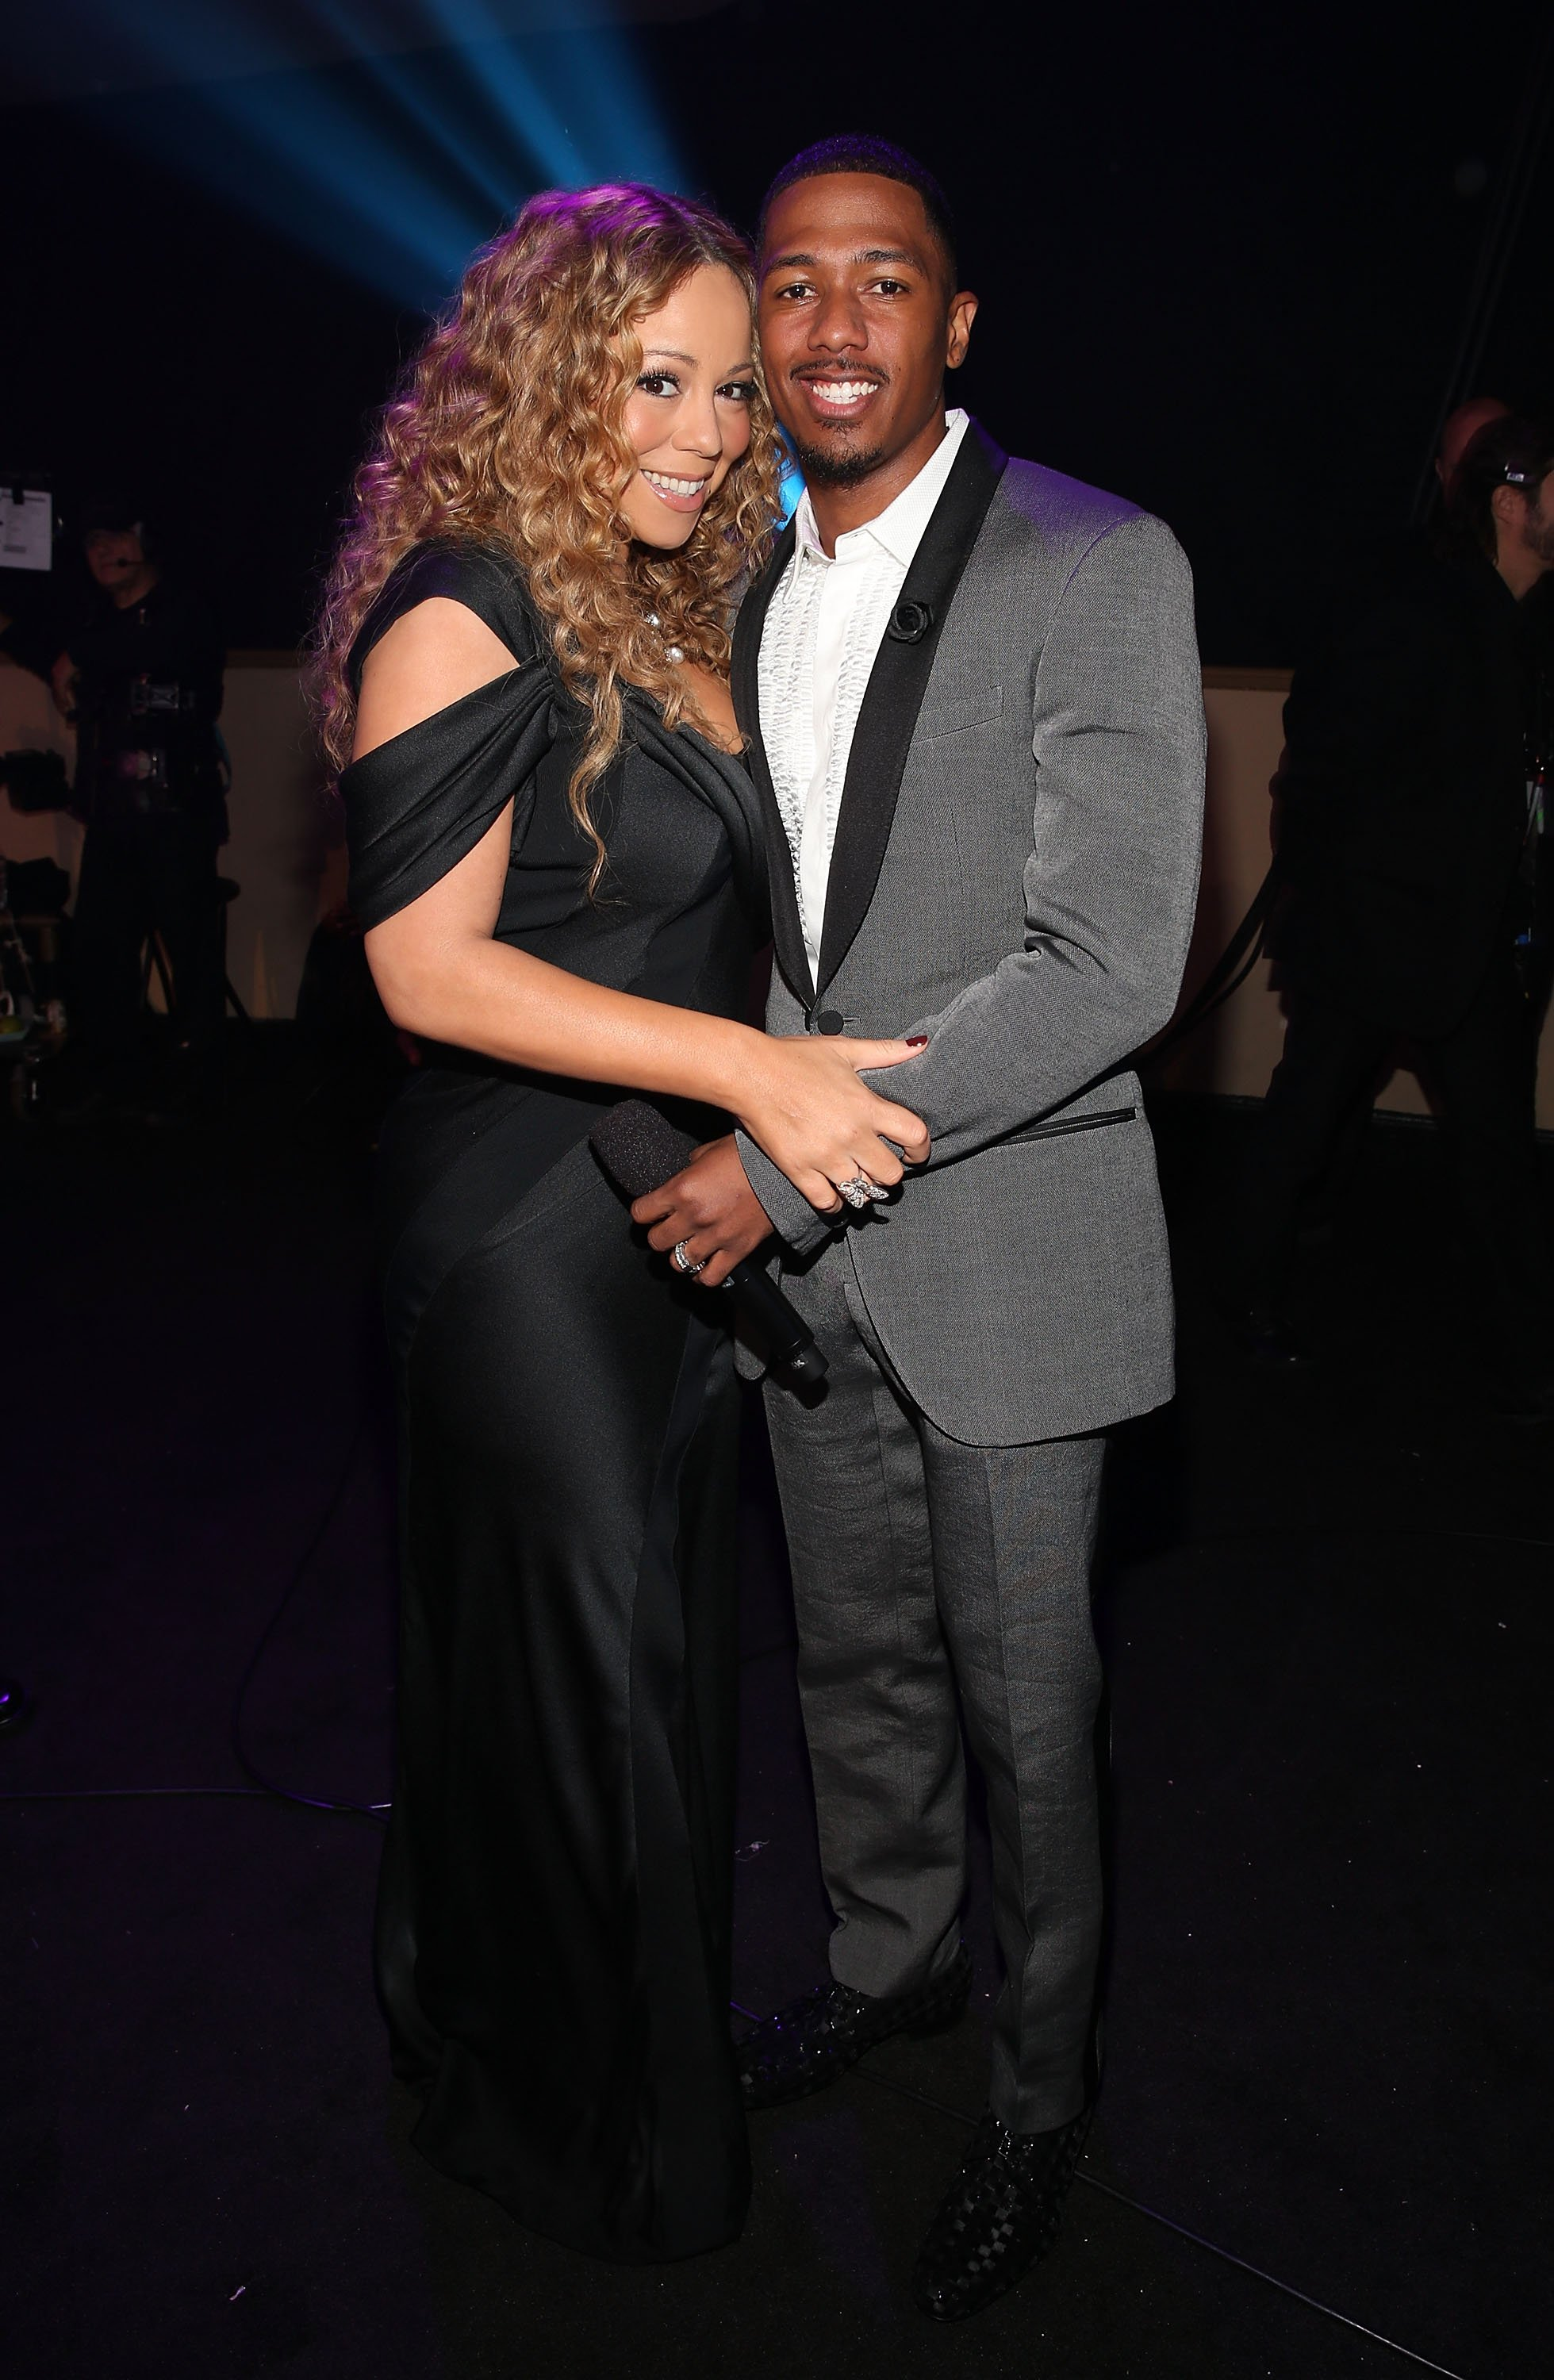 Mariah Carey and Nick Cannon attend Nickelodeon's 2012 TeenNick HALO Awards at Hollywood Palladium on November 17, 2012 | Photo: GettyImages